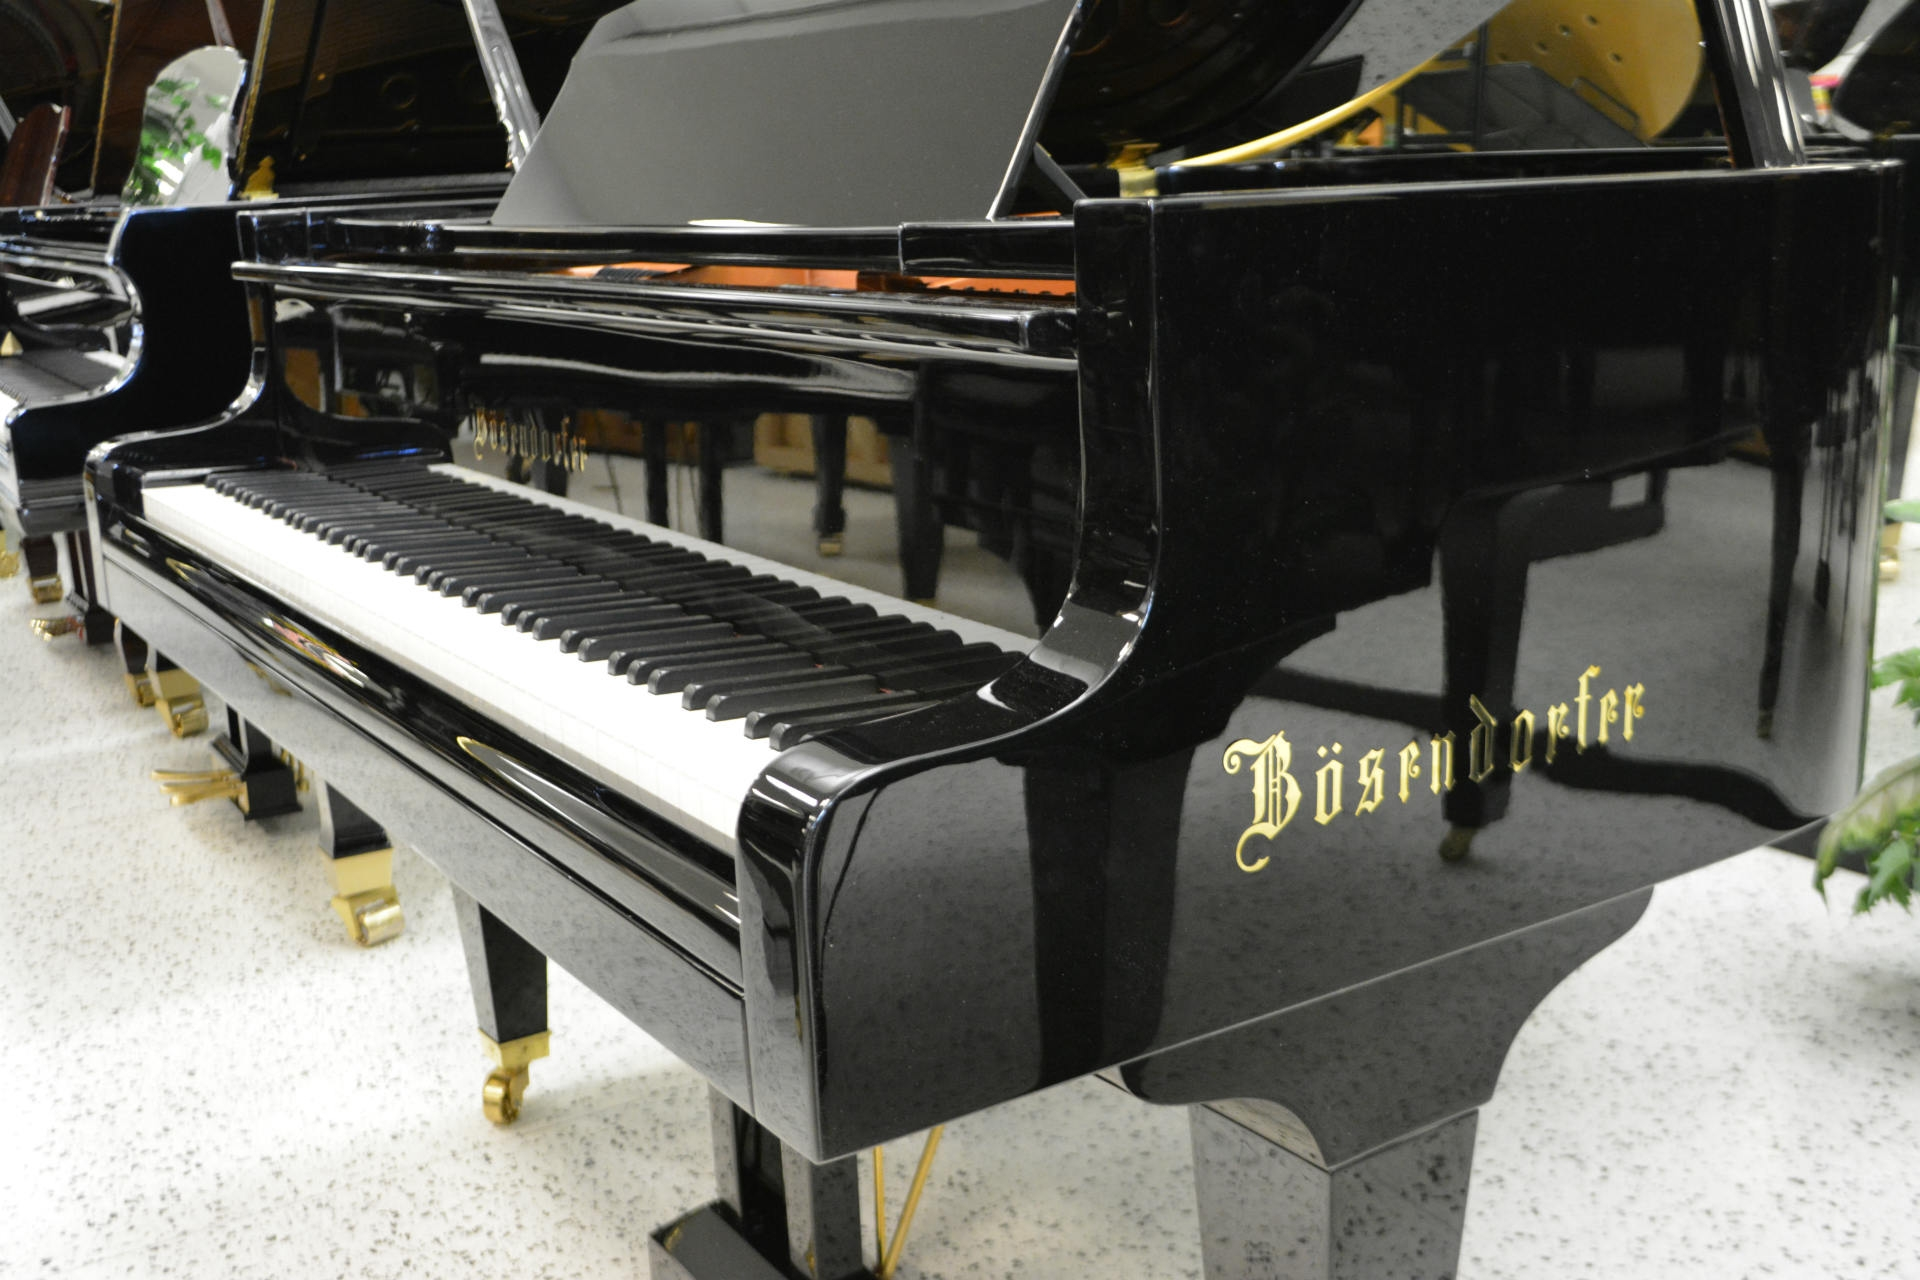 Bosendorfer Model 170 Grand Piano (used)